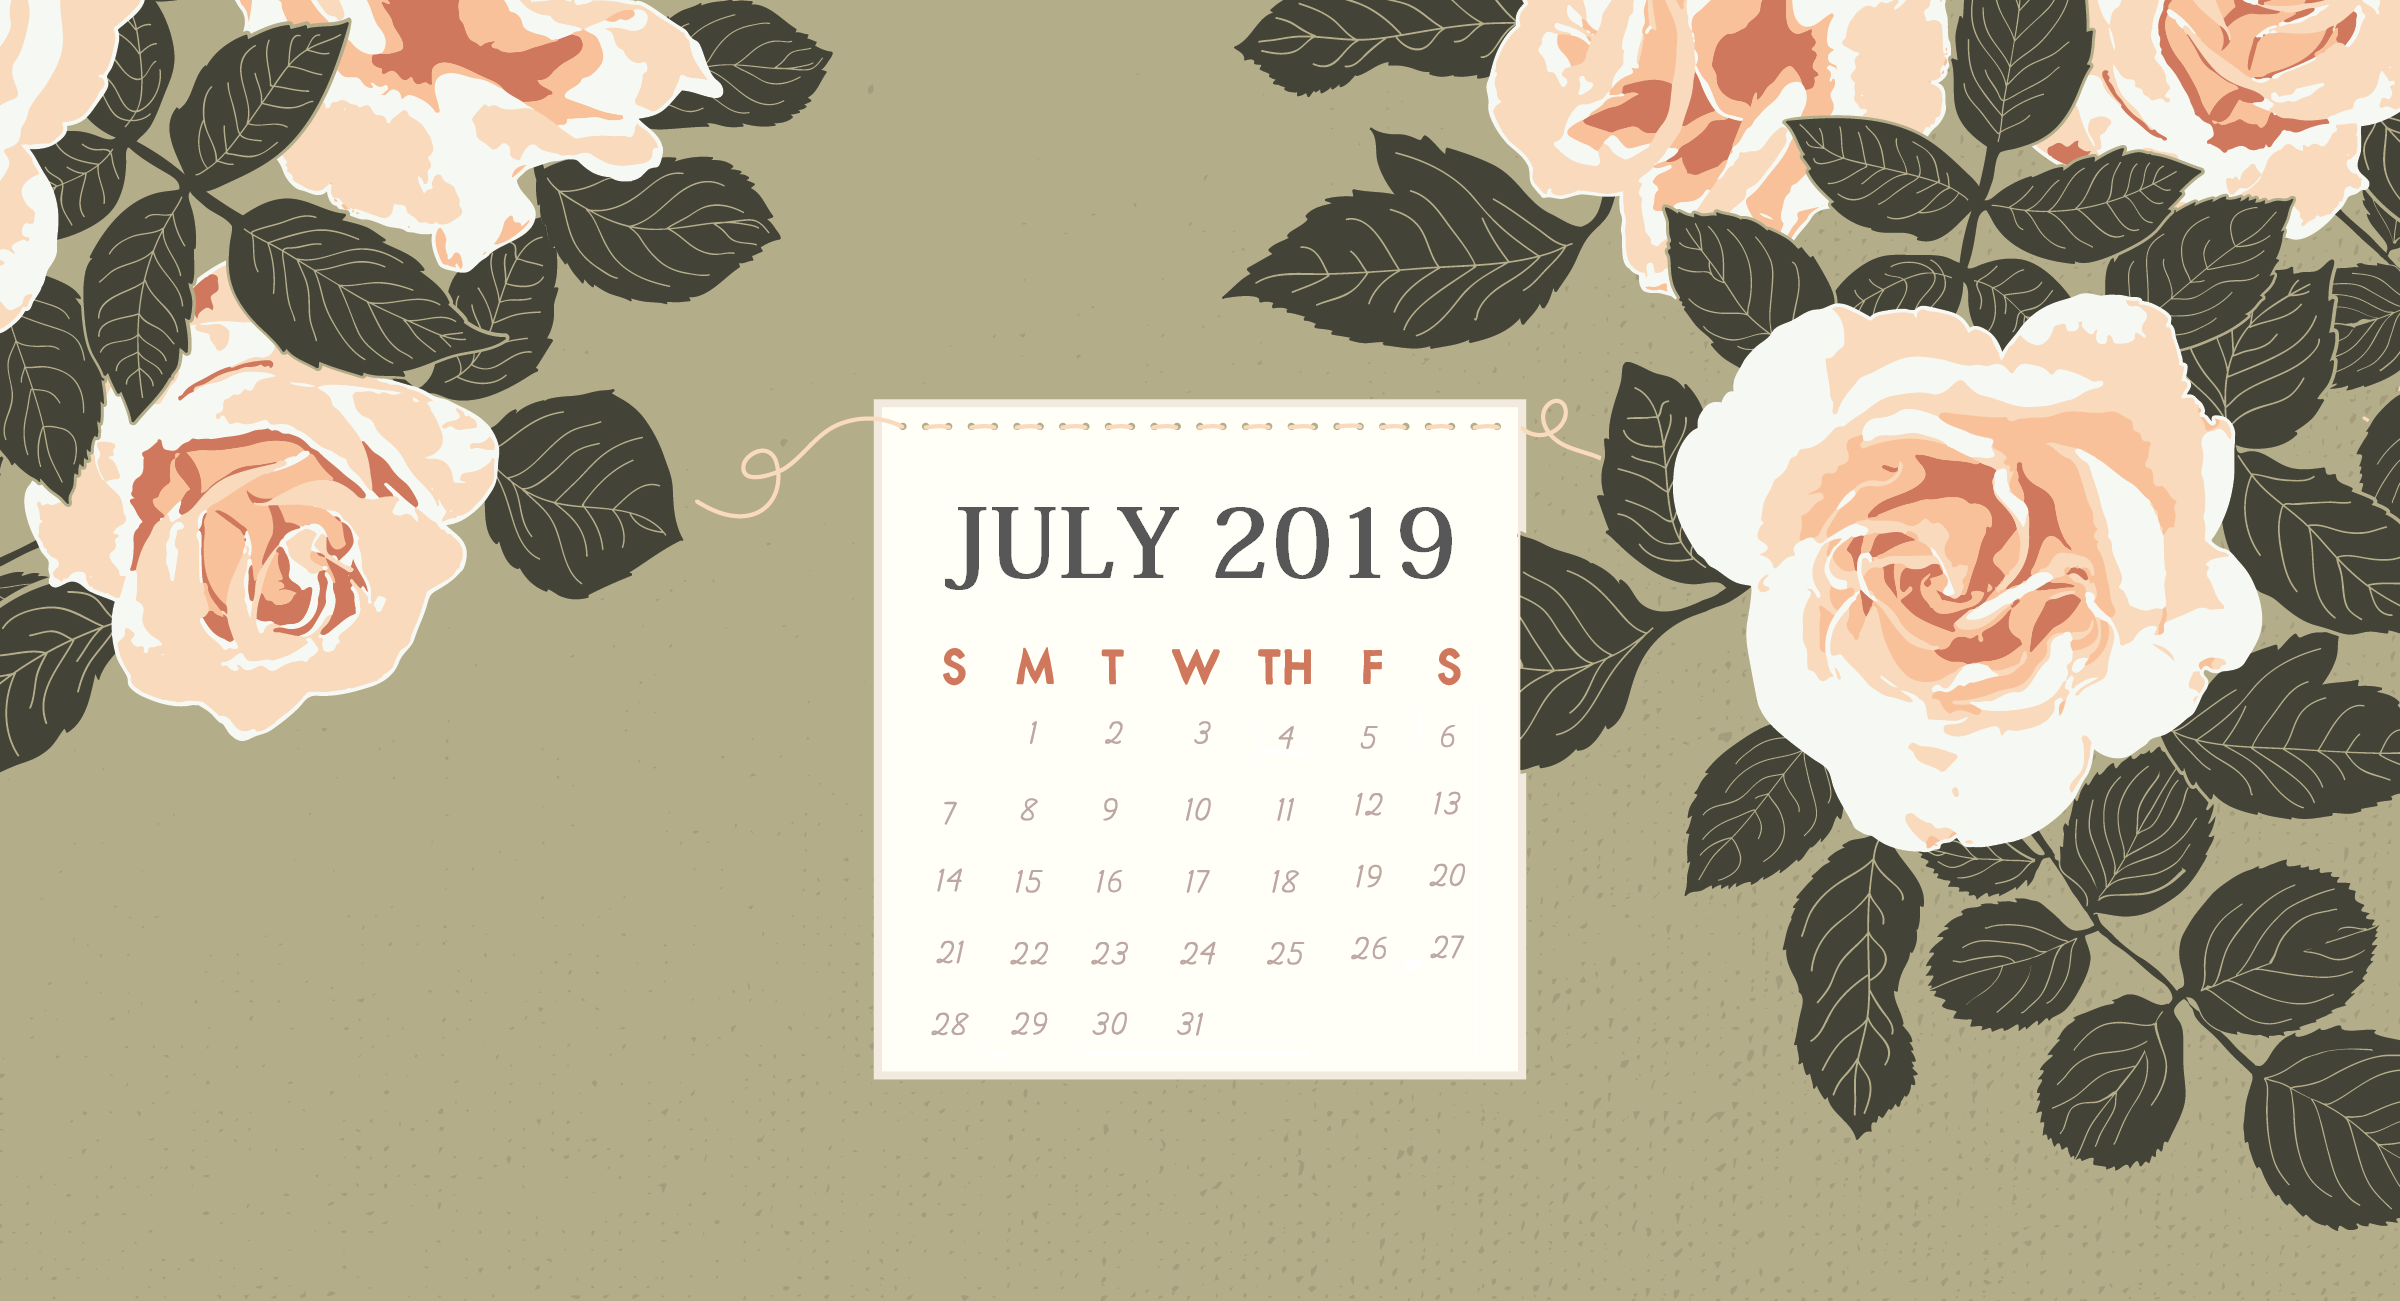 July 2019 Floral Calendar HD Wallpaper